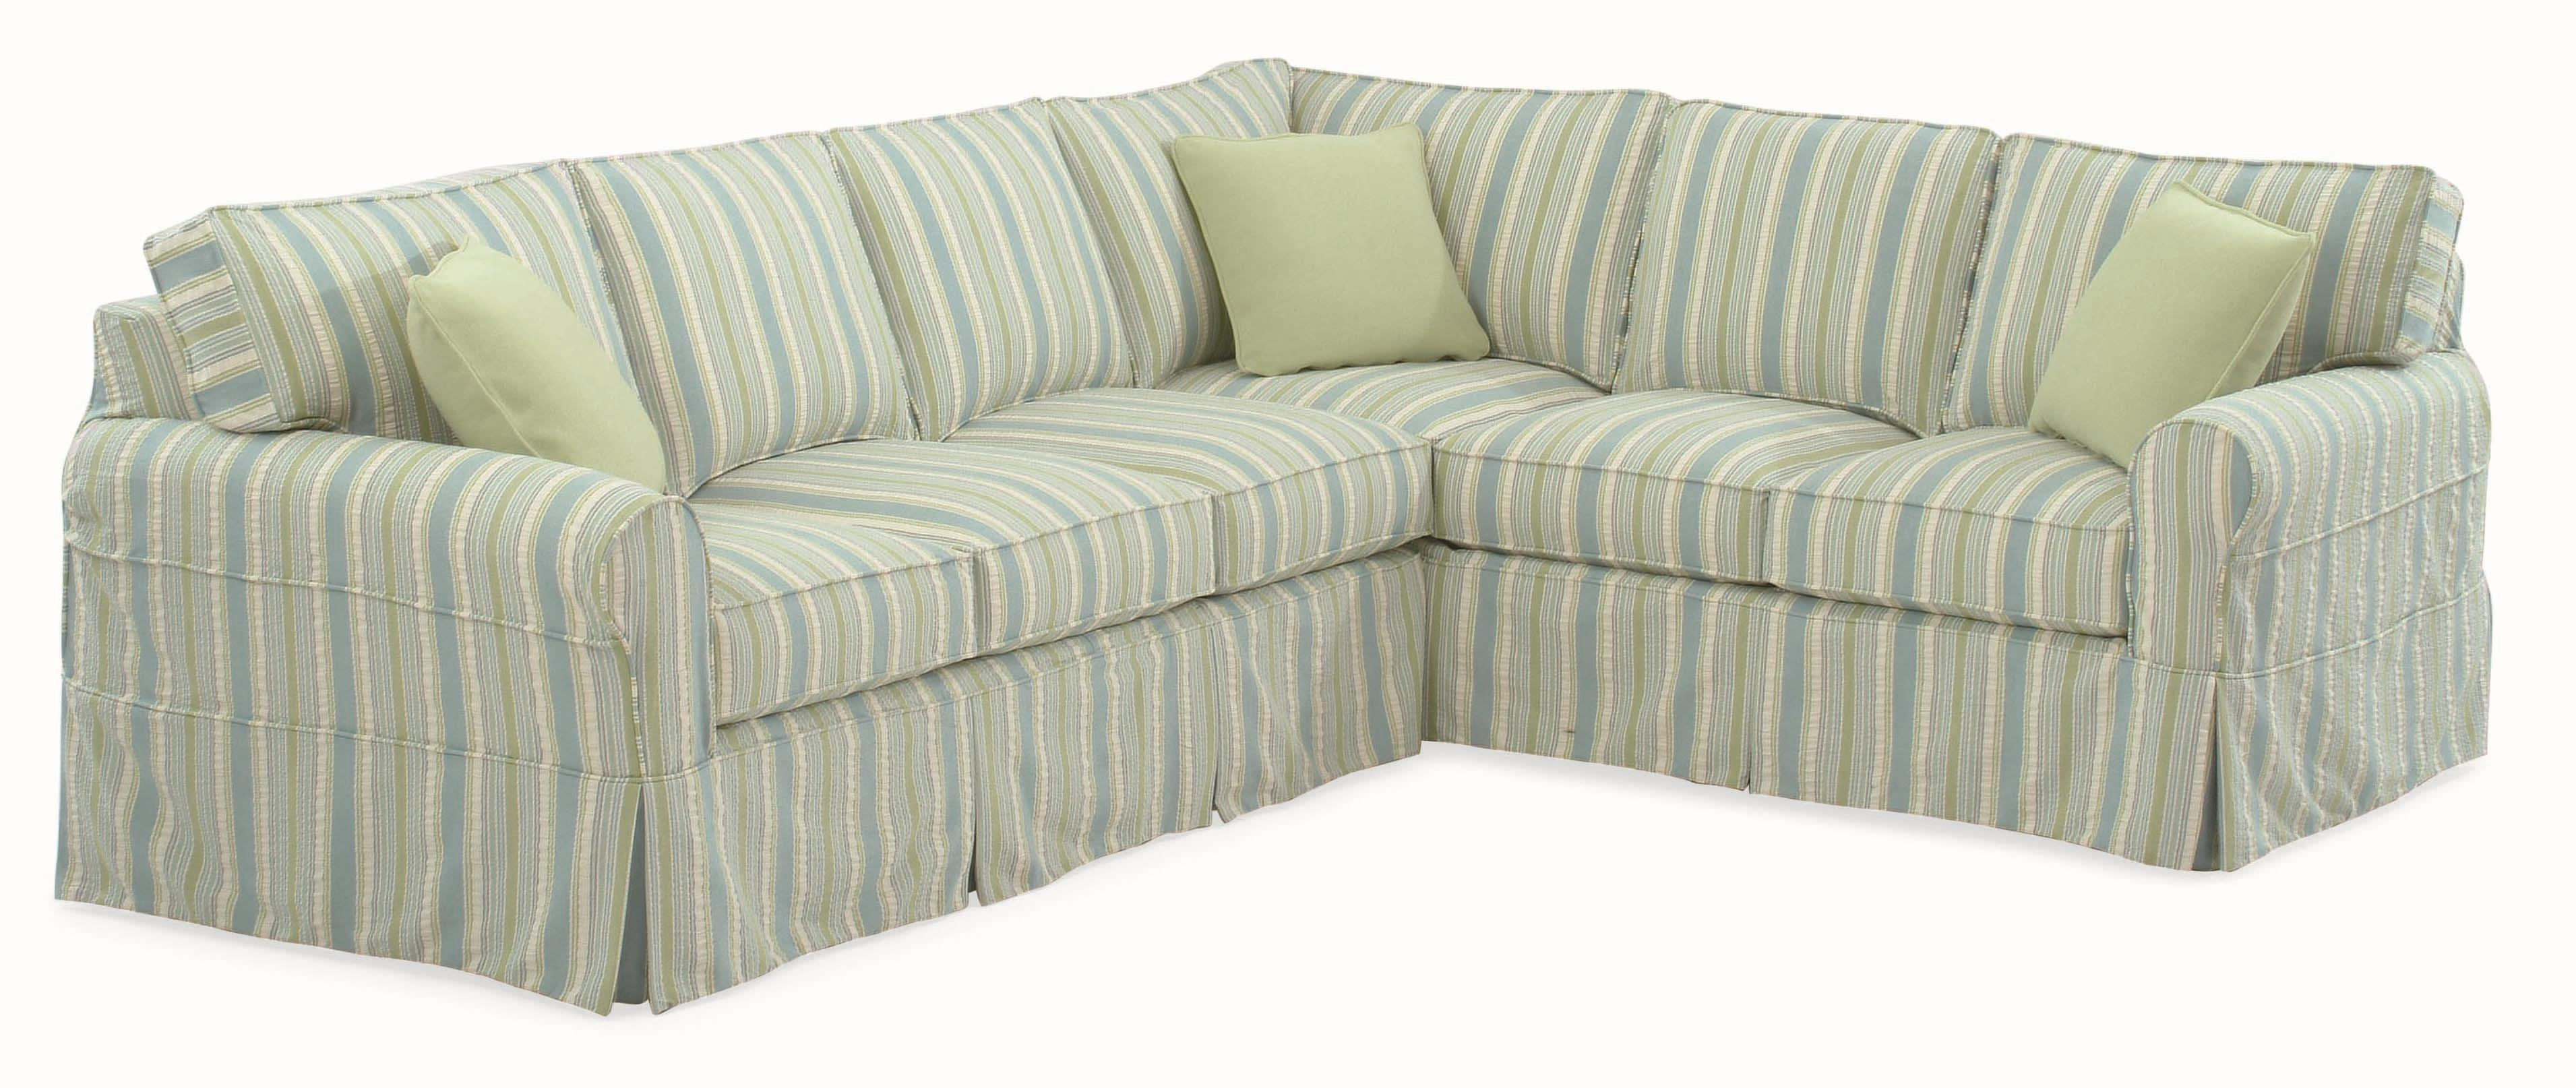 Braxton Culler 728 Casual Sectional Sofa With Rolled Arms And within Sectional Sofas In Savannah Ga (Image 3 of 10)